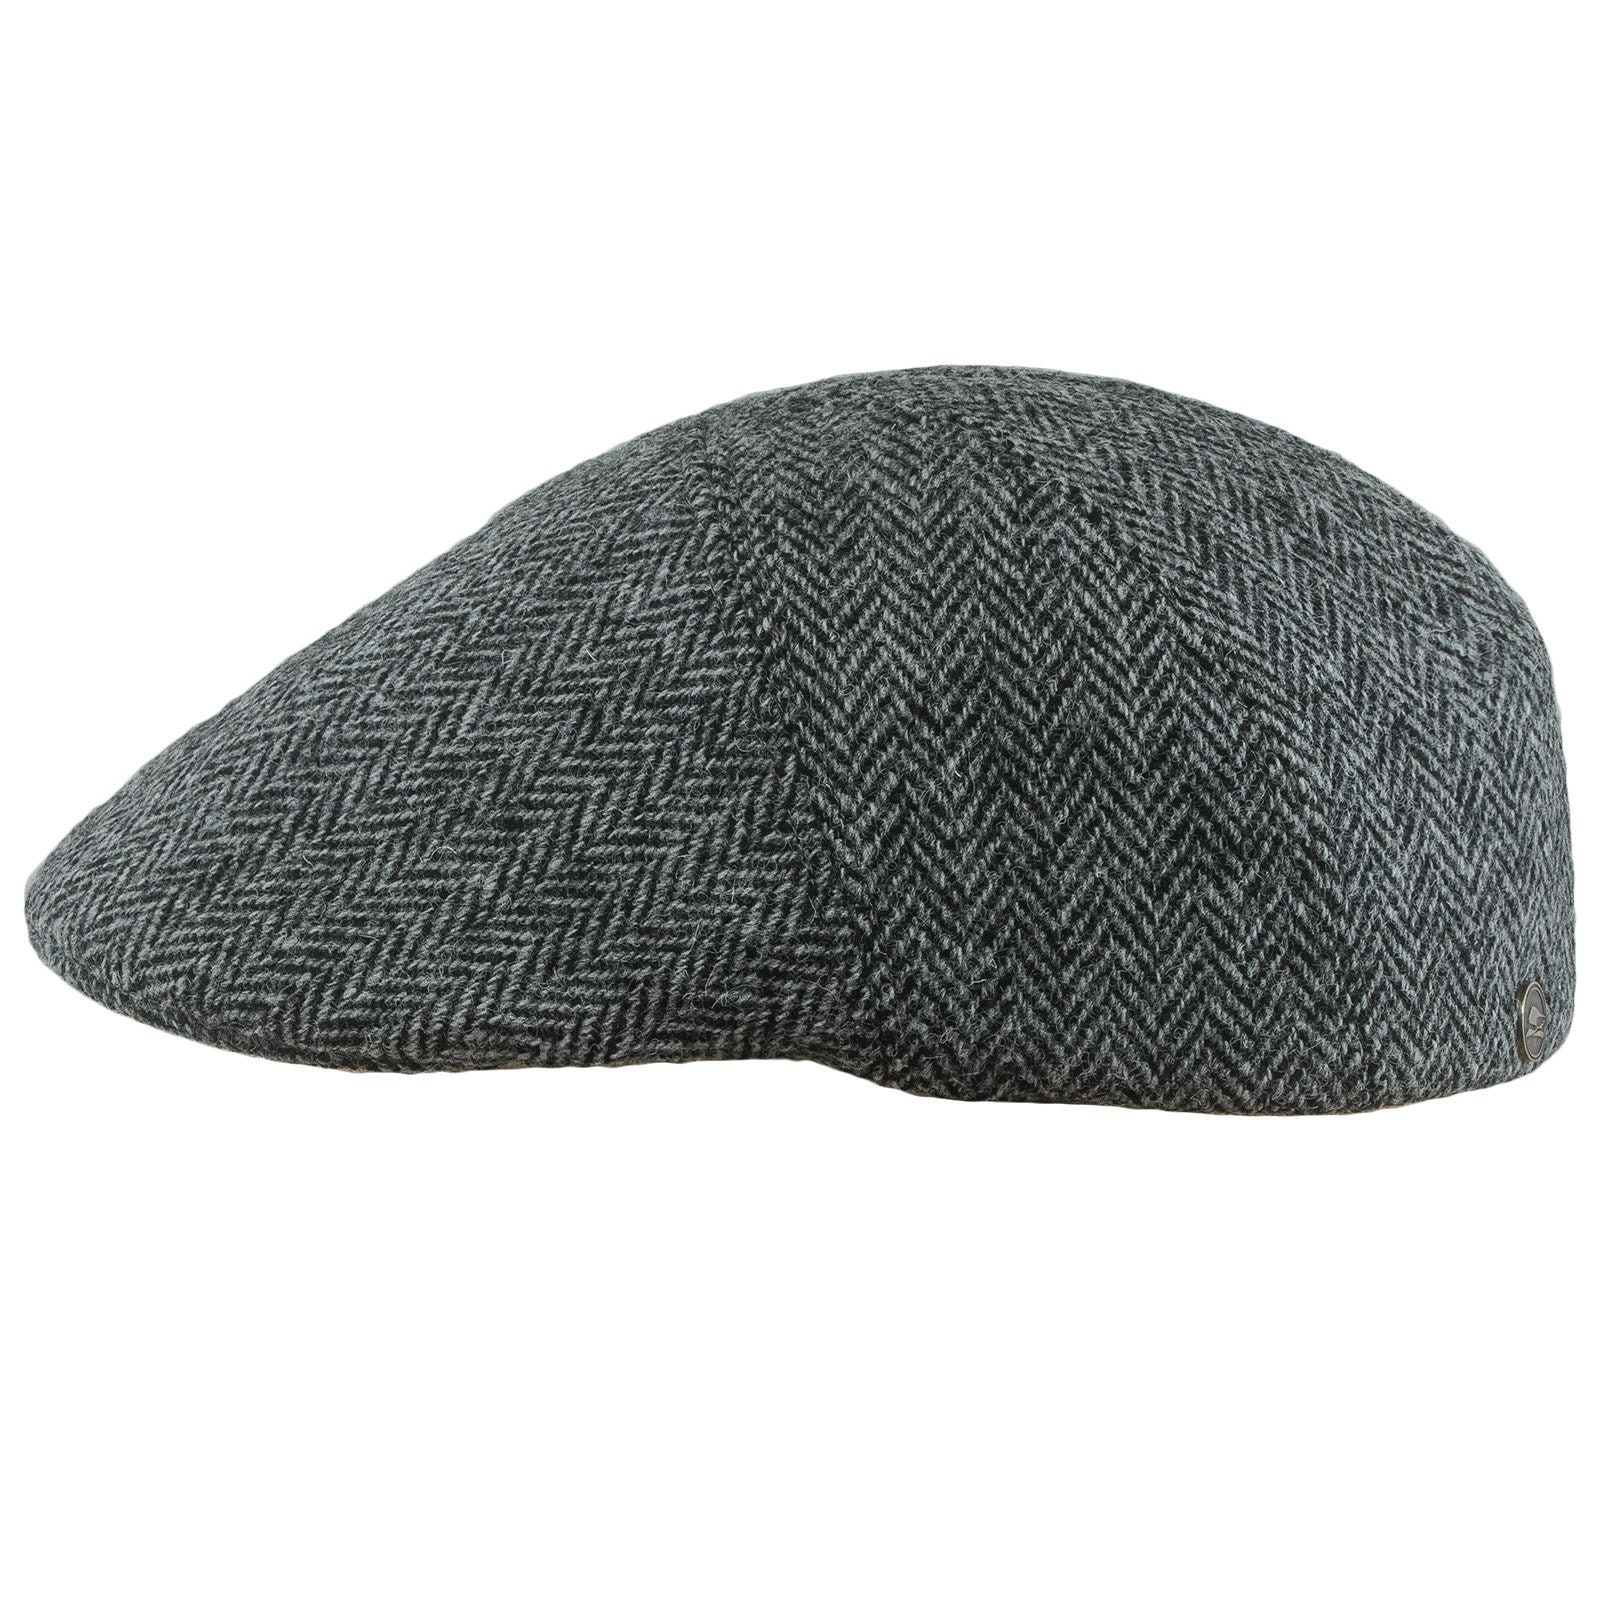 4d2248f51e0 IVY FIVE Harris Tweed flat cap with warm quilted padded